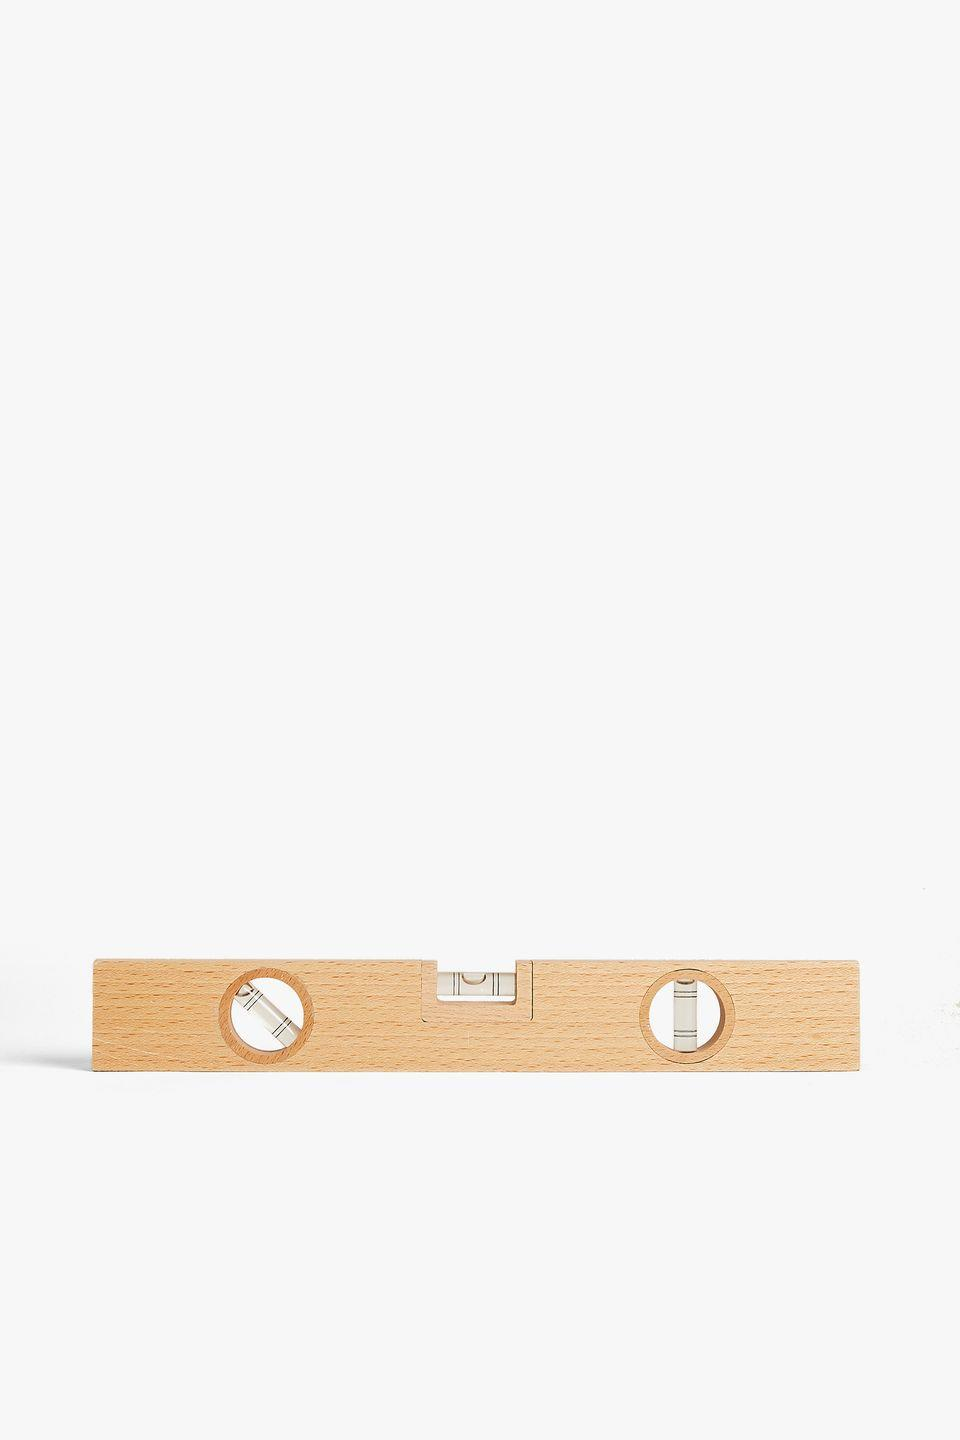 <p>Perfect for a variety of DIY projects, this beech wood spirit level is a must-have tool for the home.</p>